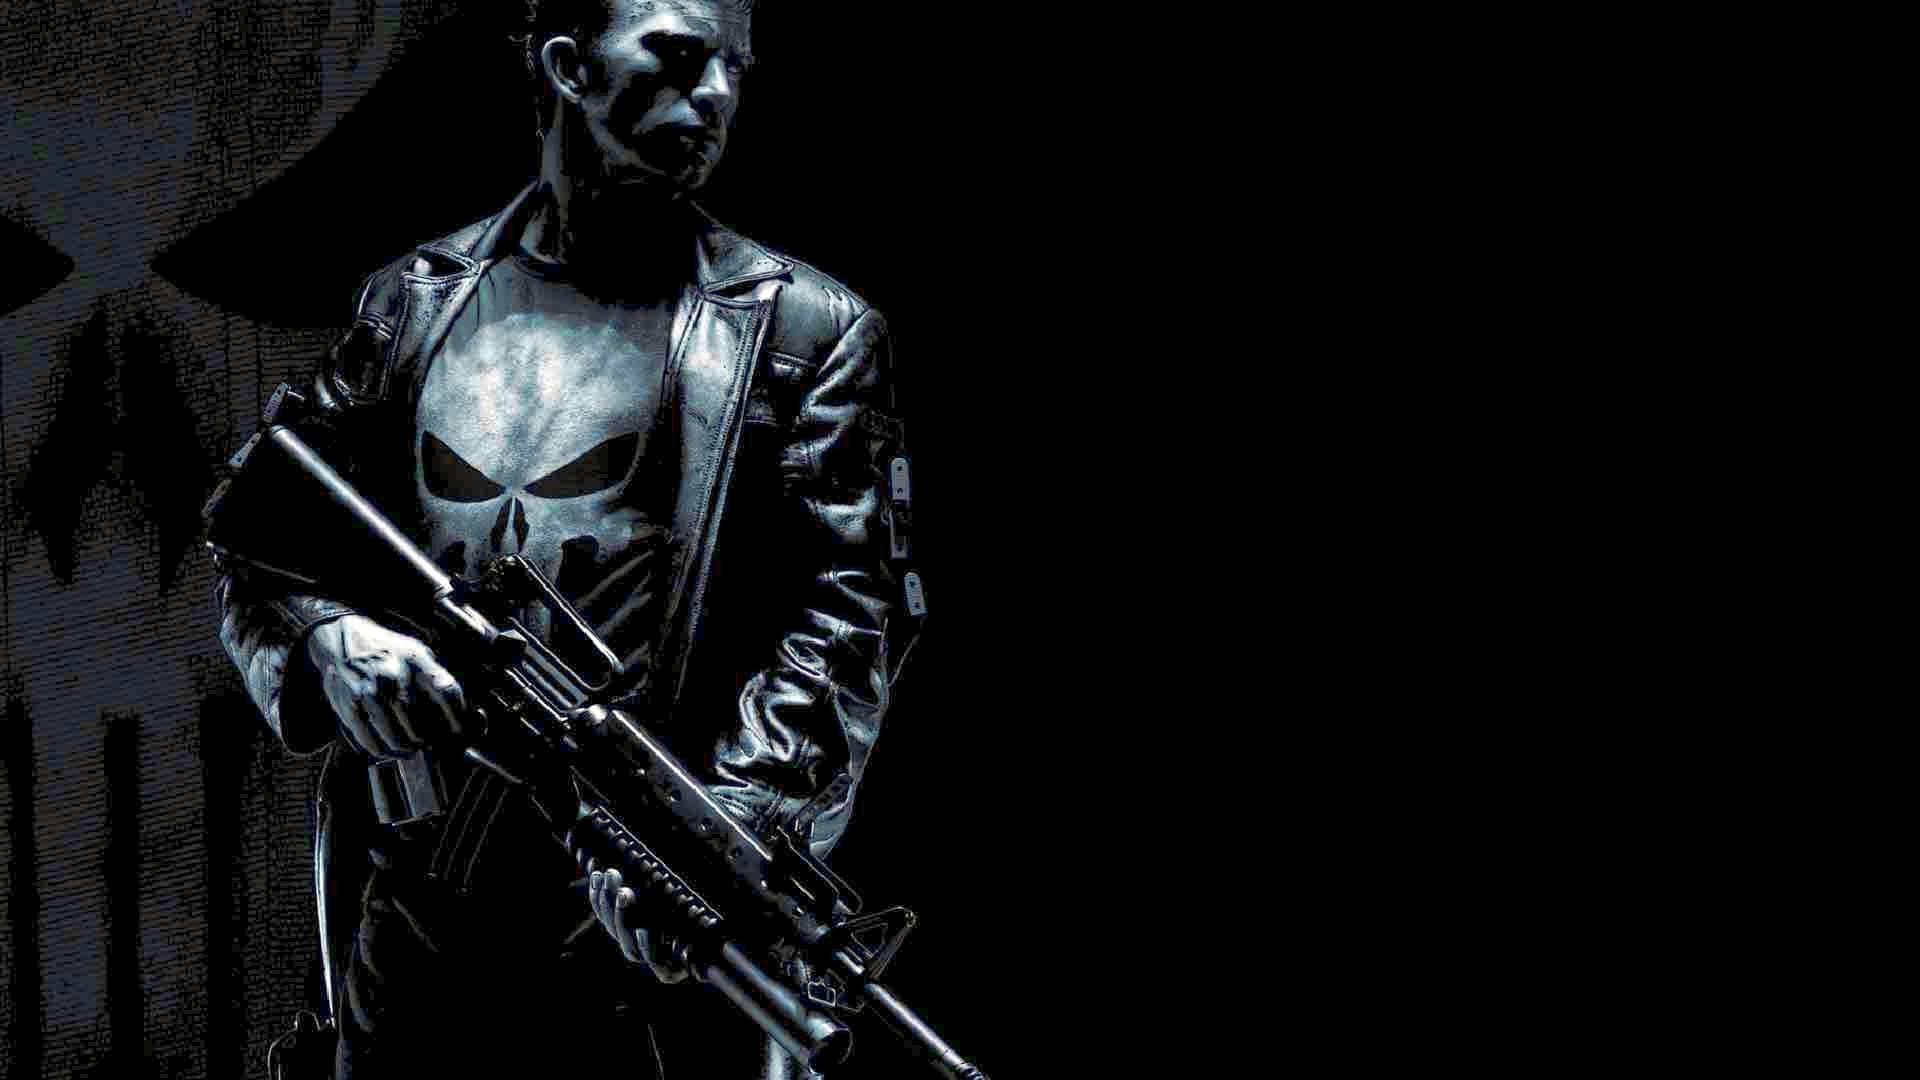 1920x1080 The Punisher (2004) Computer Wallpapers, Desktop Backgrounds .